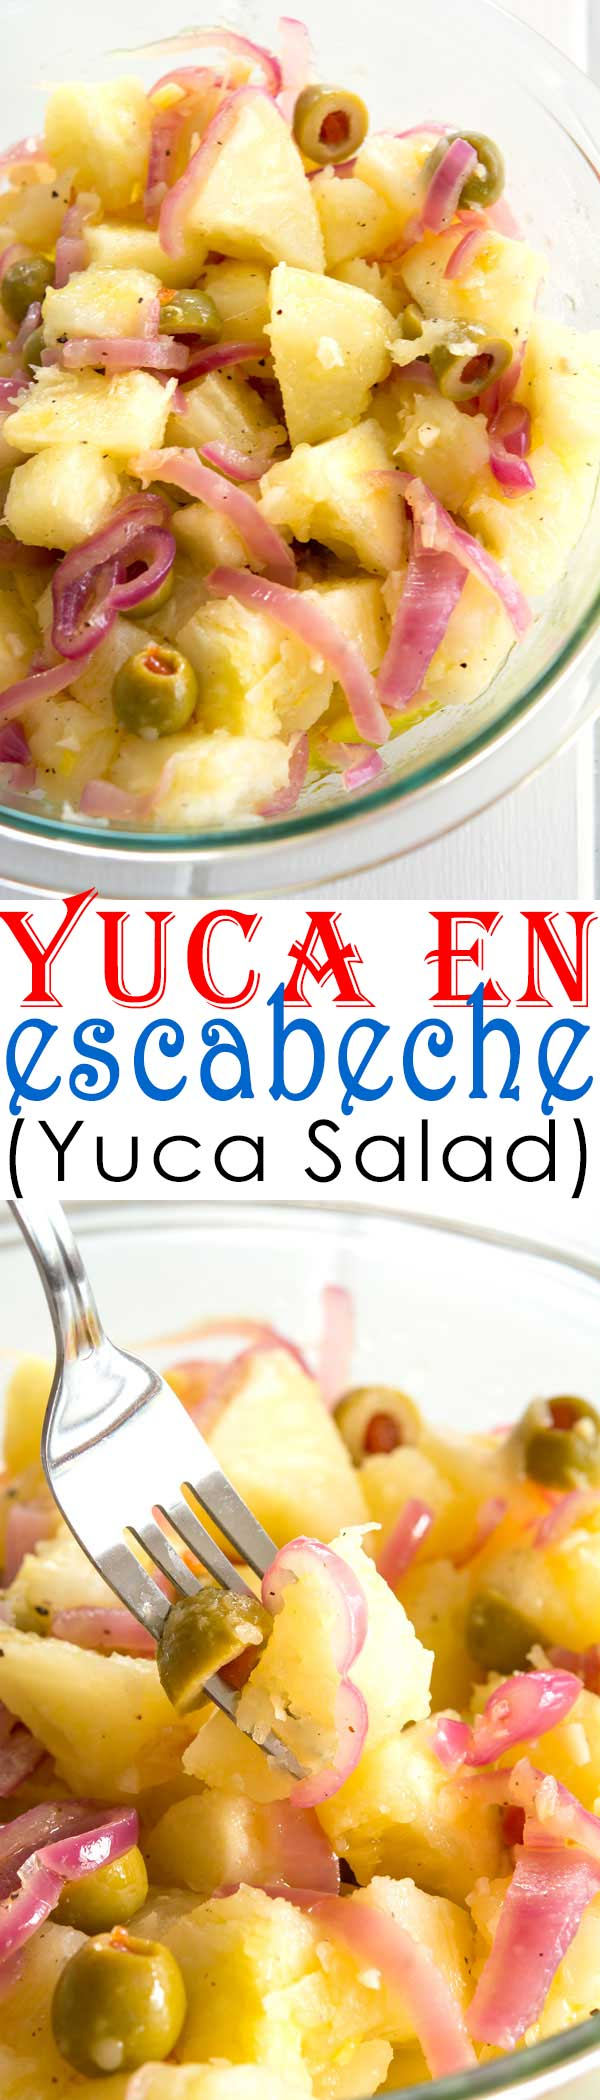 Puerto Rican pickled Yuca en Escabeche - like potato salad but with a garlicky oil and vinegar dressing! Great dinner side dish with pork or beef and super easy recipe!